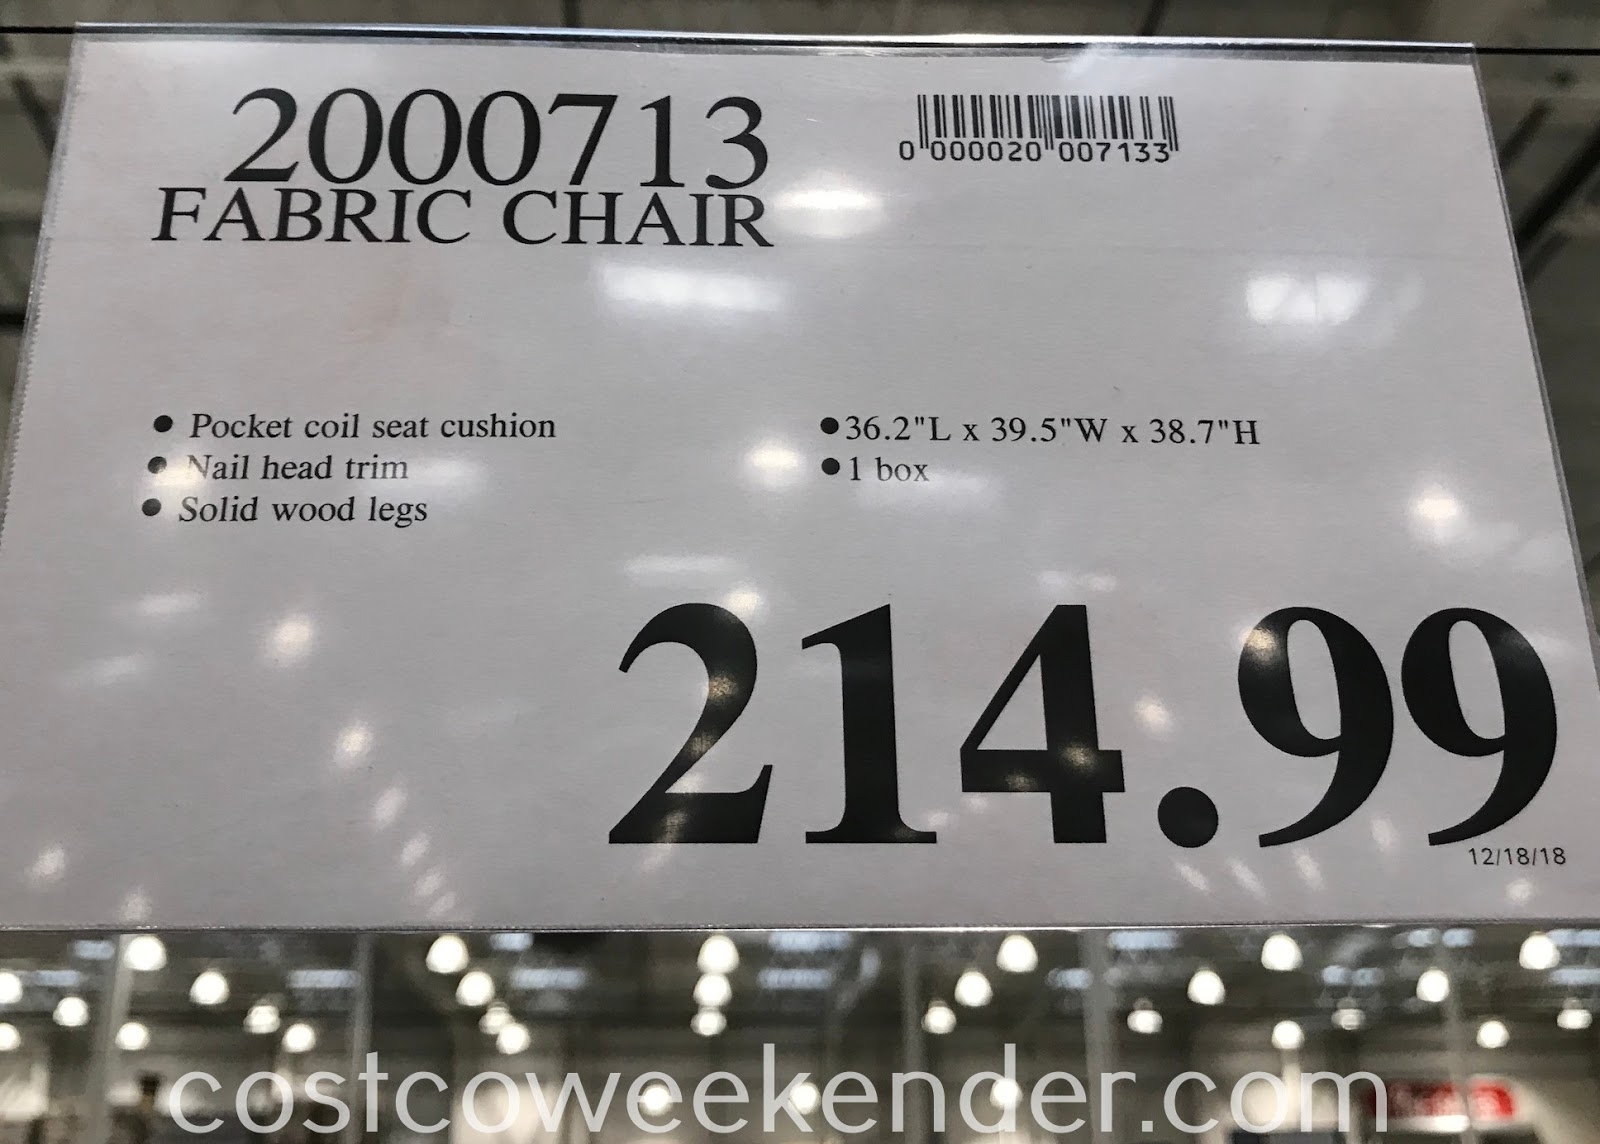 Deal for the Fabric Chair at Costco